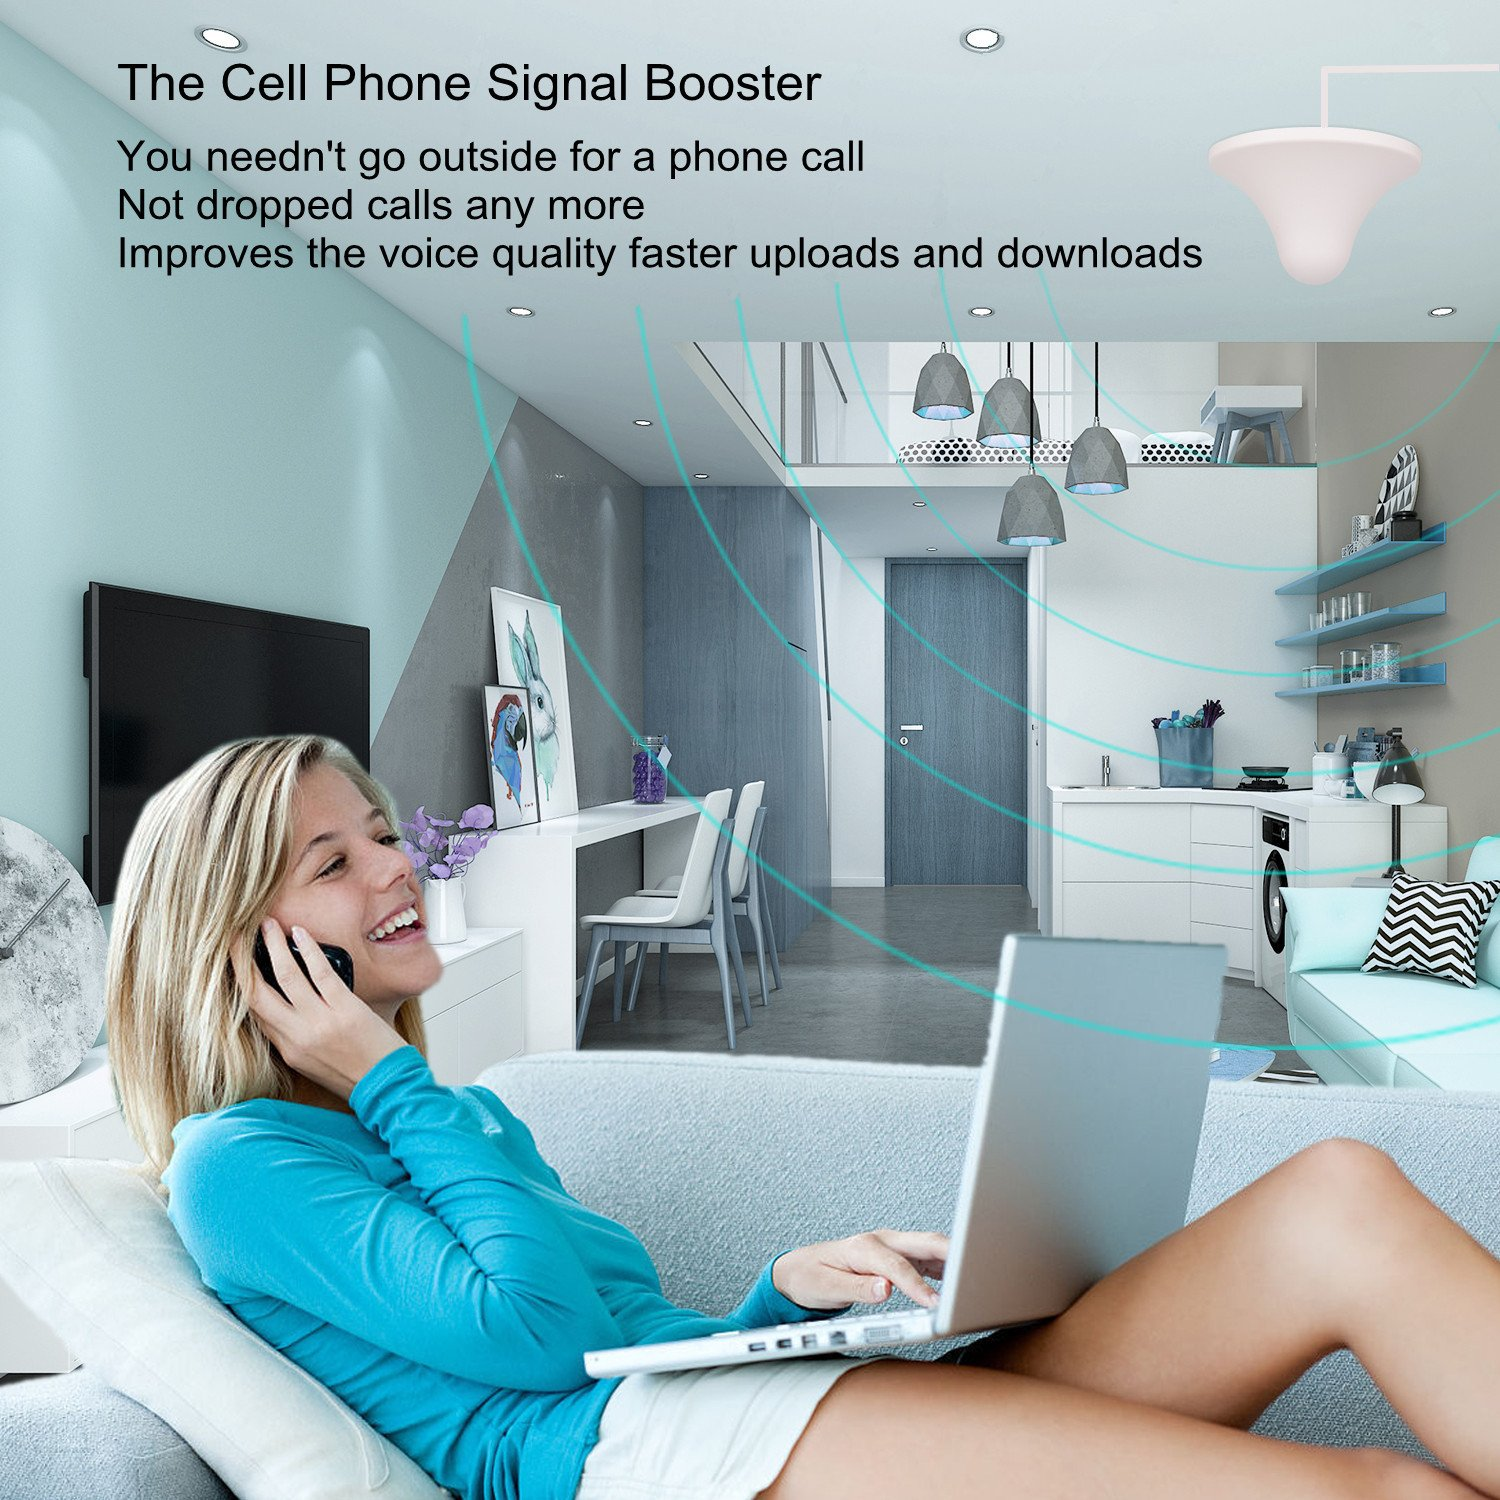 Phonelex Cell Phone Signal Booster AT&T T-Mobile 4G LTE Band12/17 700Mhz 70dB Cell Phone Signal Amplifier Mobile Signal Booster Repeater with Indoor Ceiling / Outdoor YaGi Directional Antenna For Home by phonelex (Image #4)